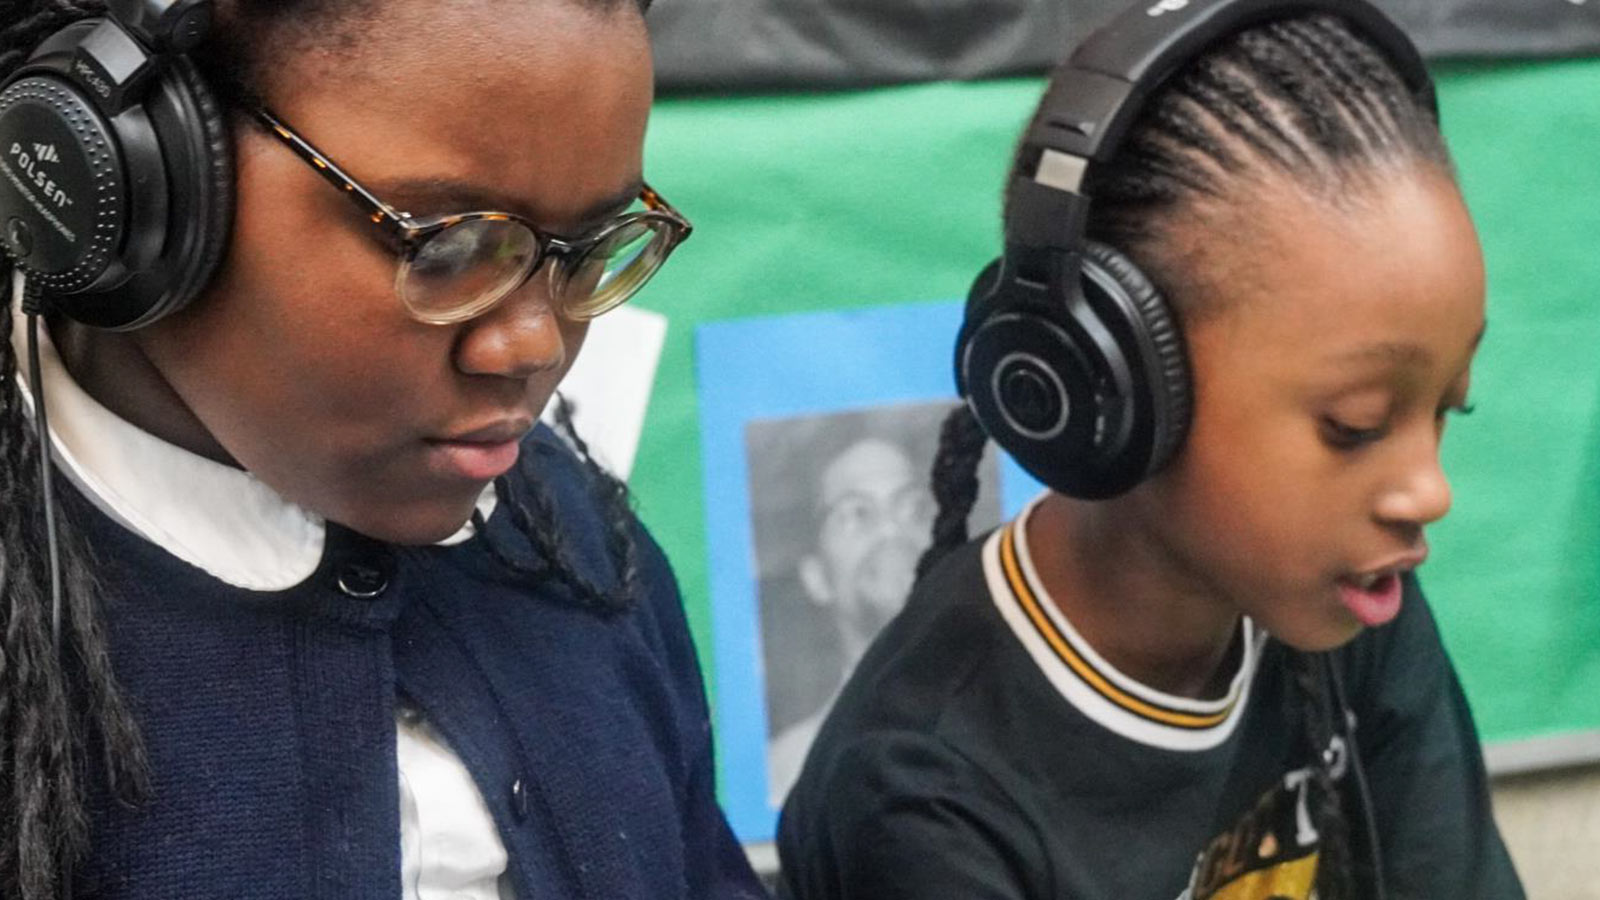 Students listening with headphones